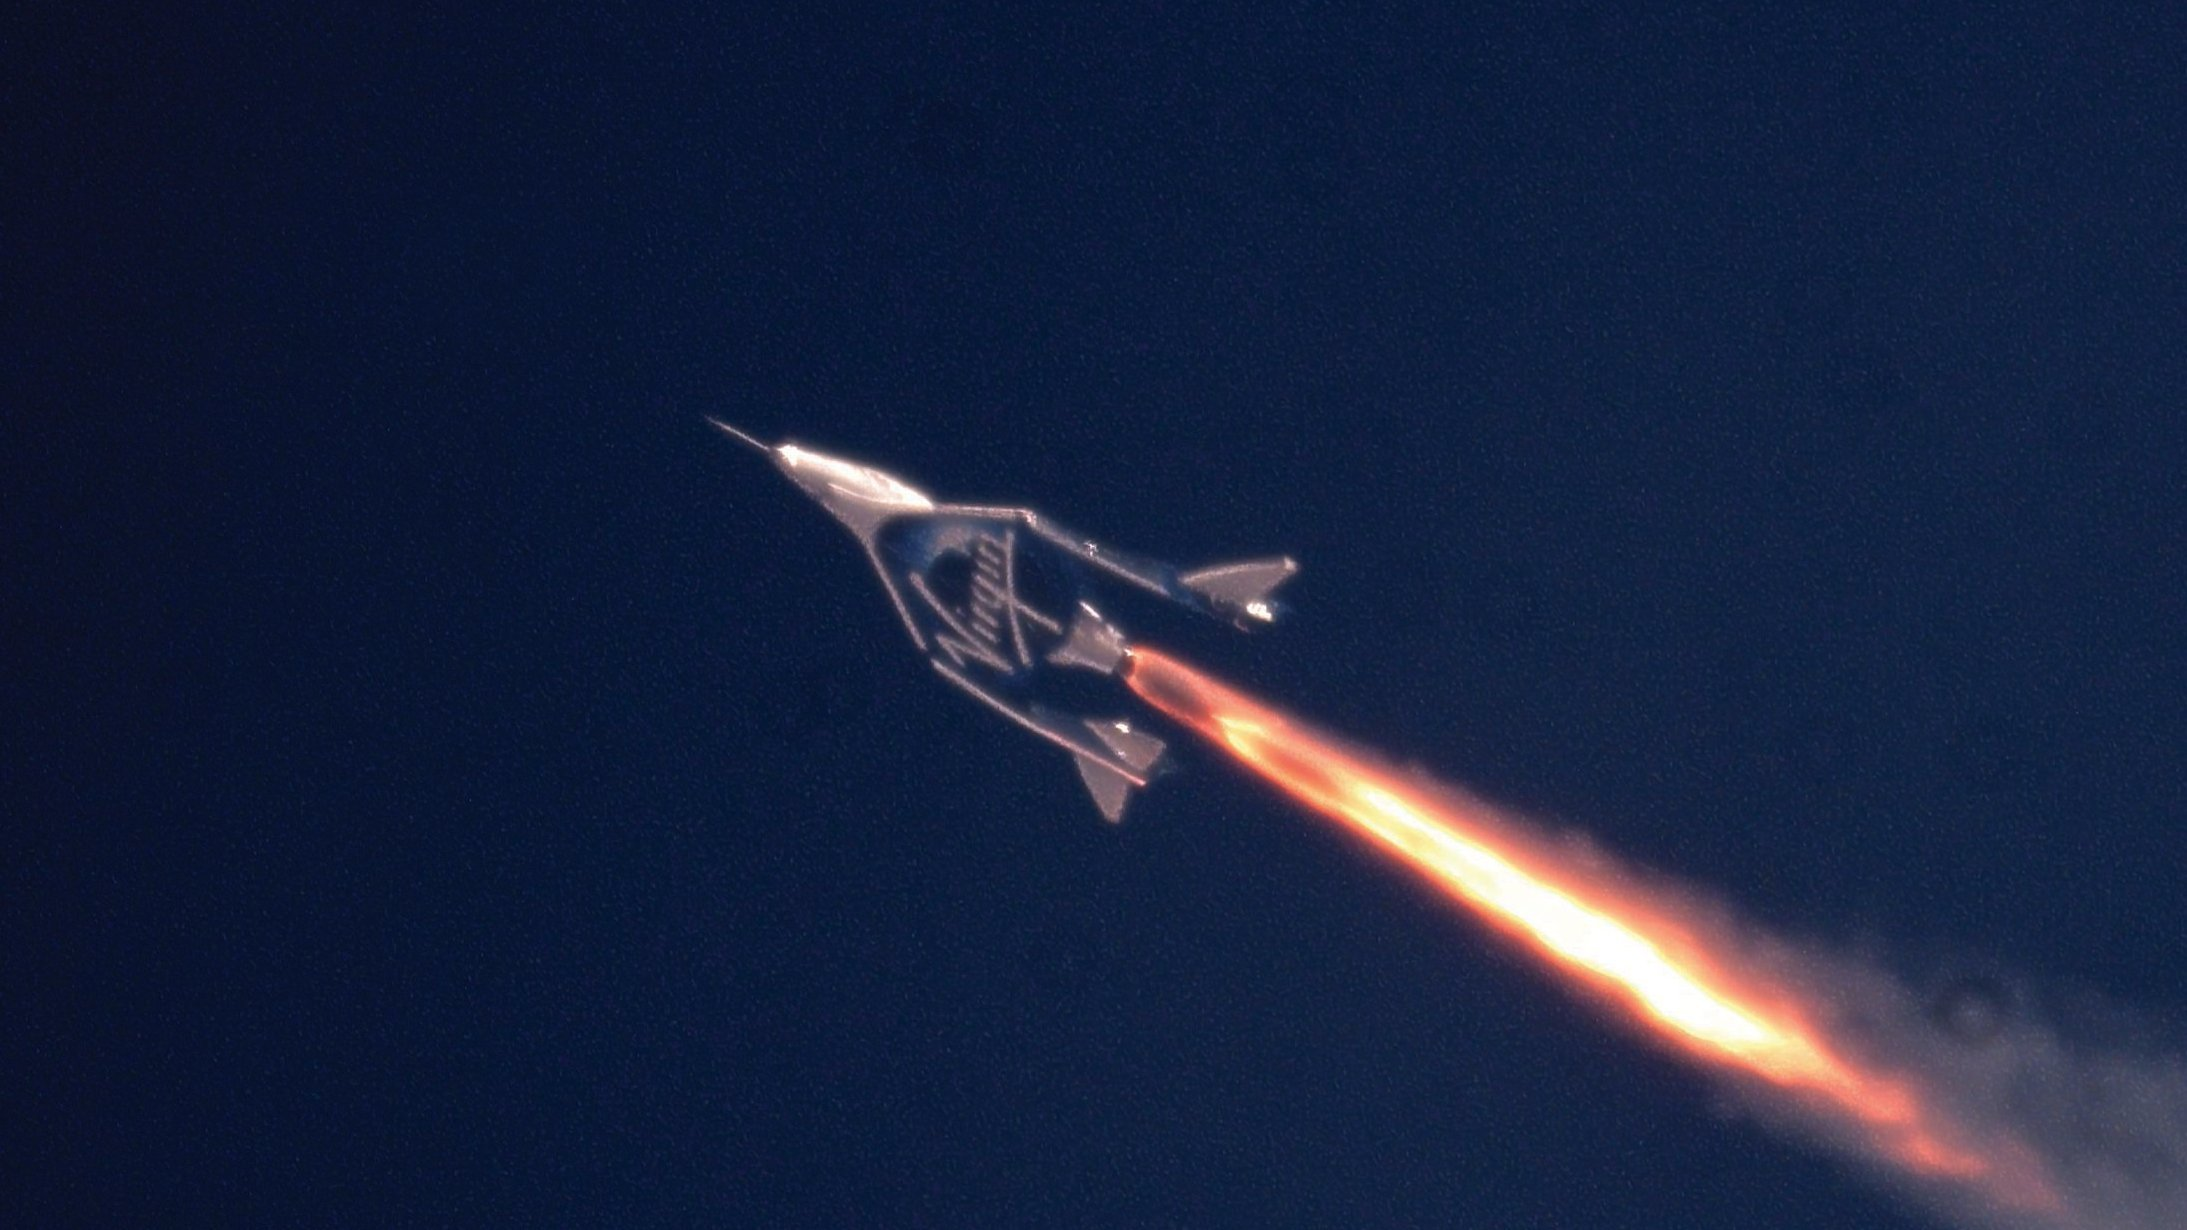 Virgin Galactic posted this image of a spacecraft on its website.